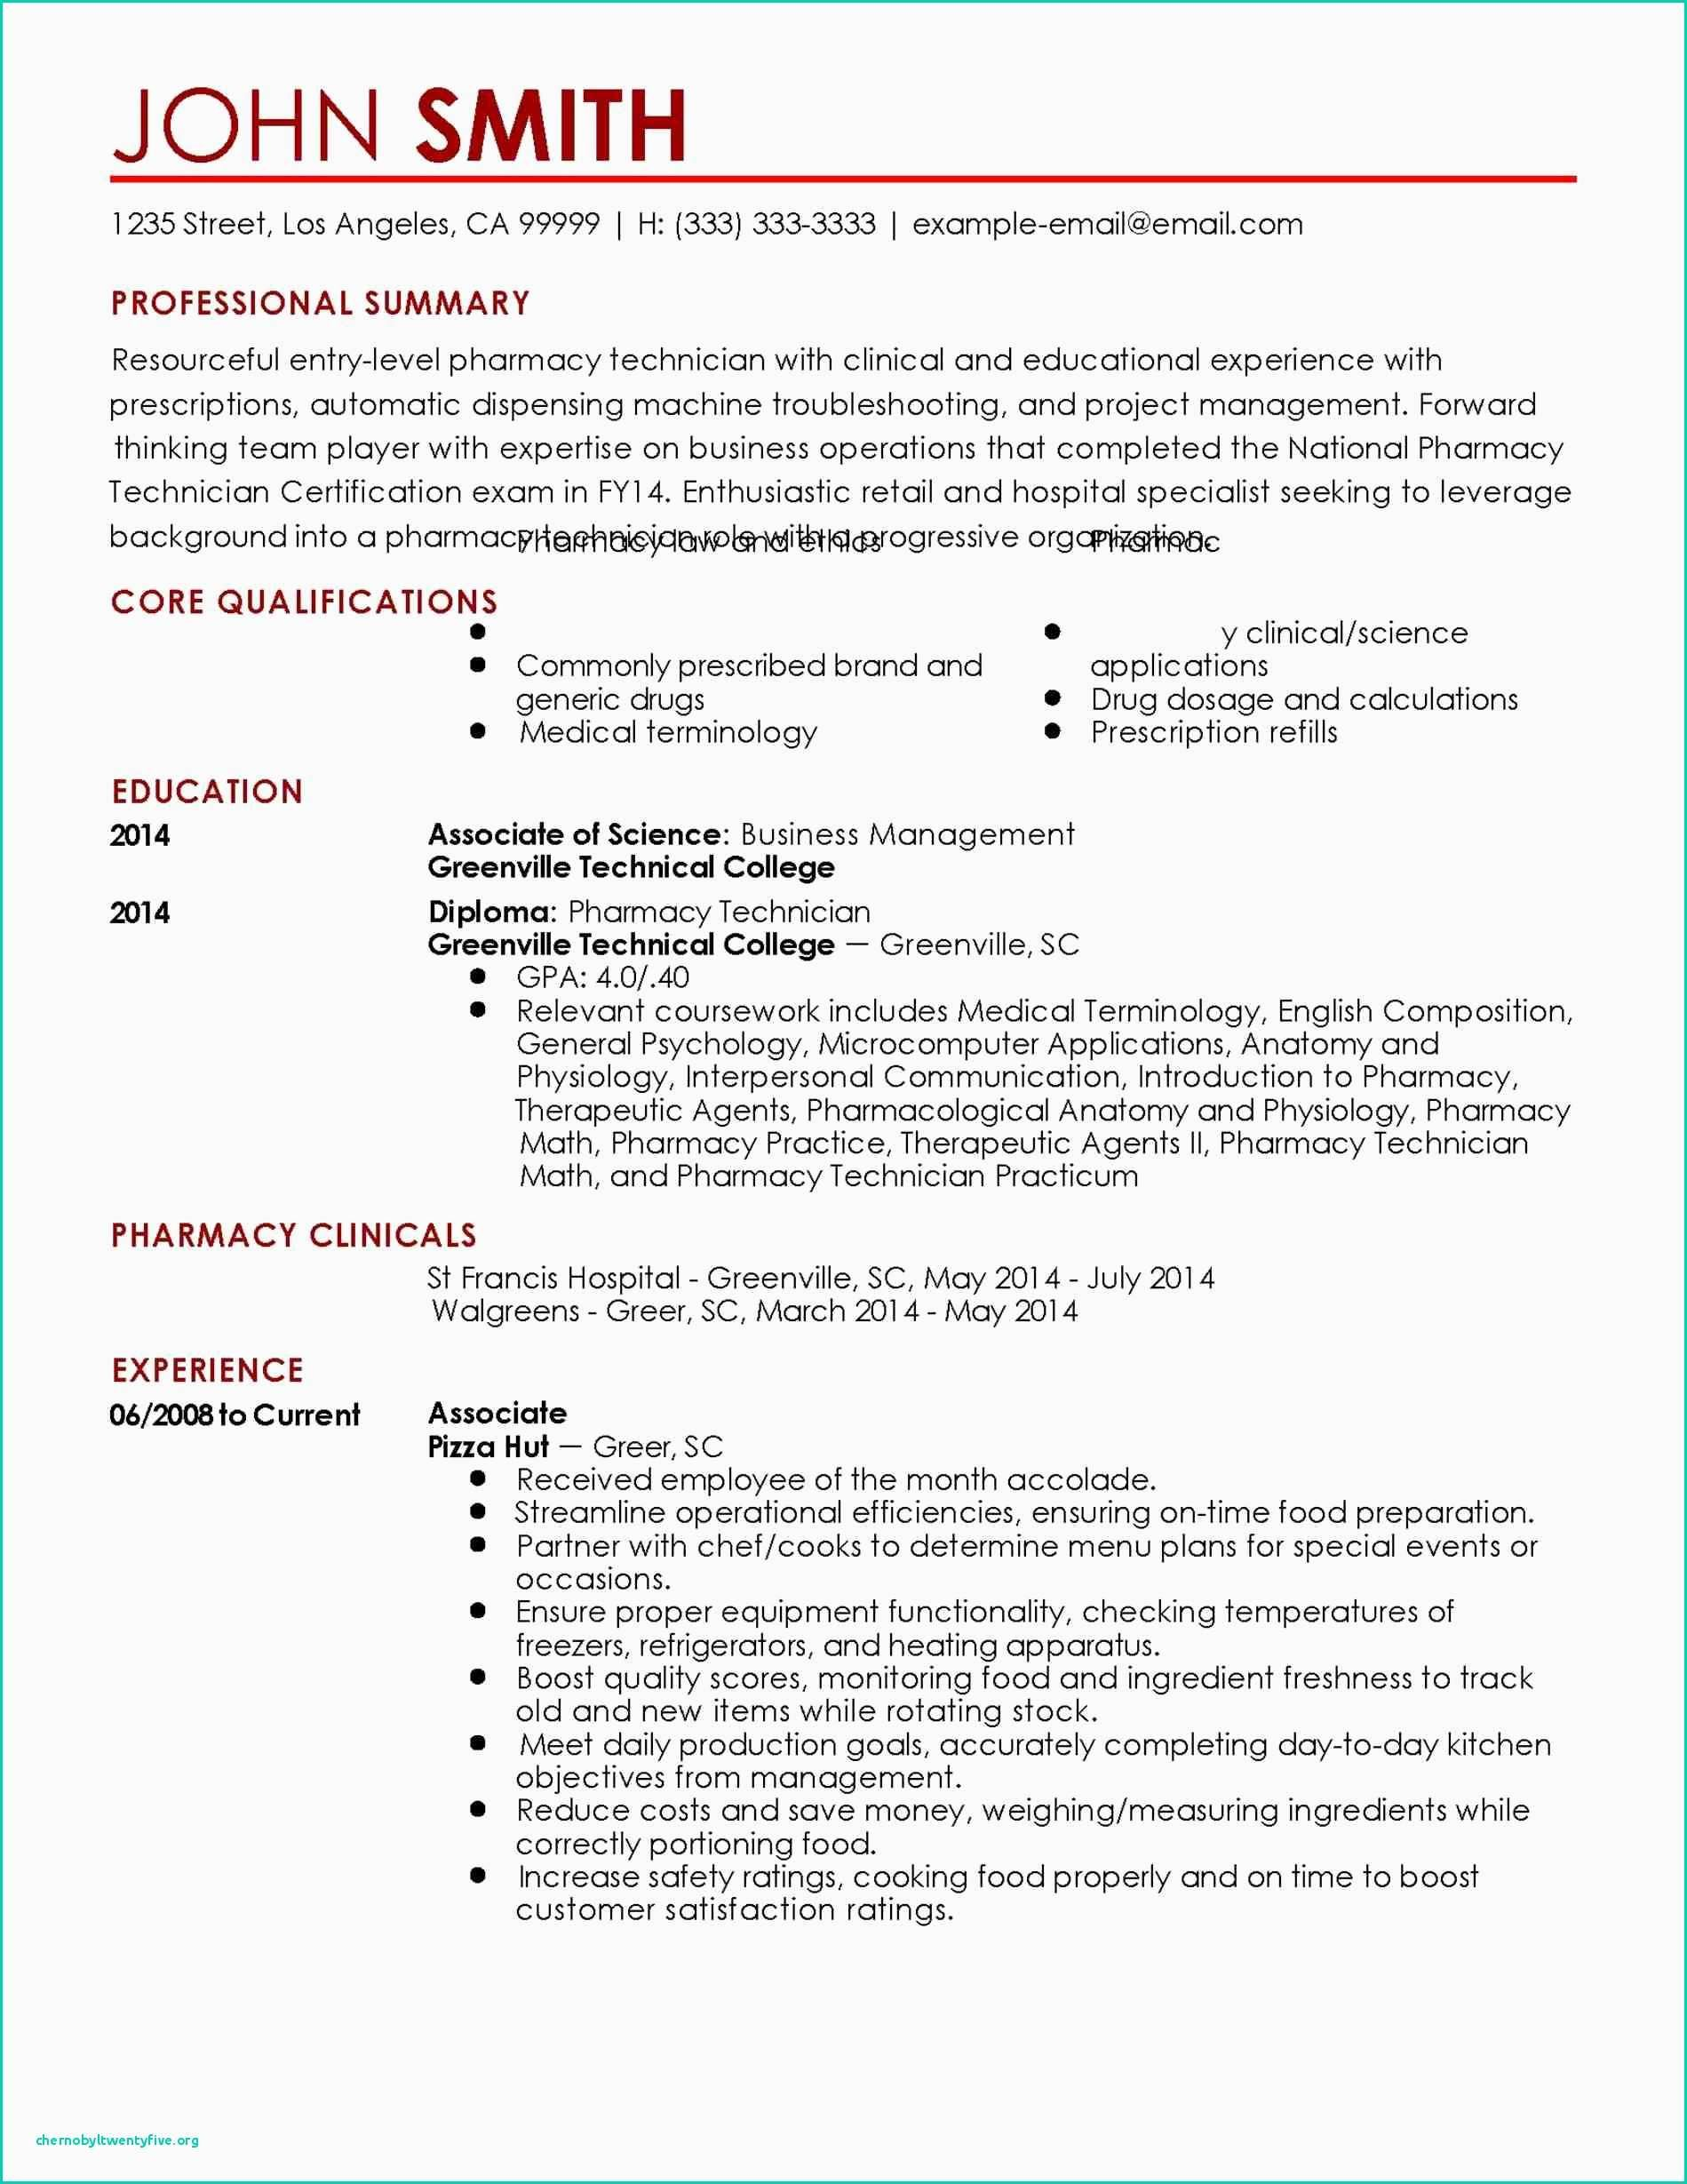 pharmacy technician cover letter resume examples entry level samples additional Resume Entry Level Pharmacy Technician Resume Samples